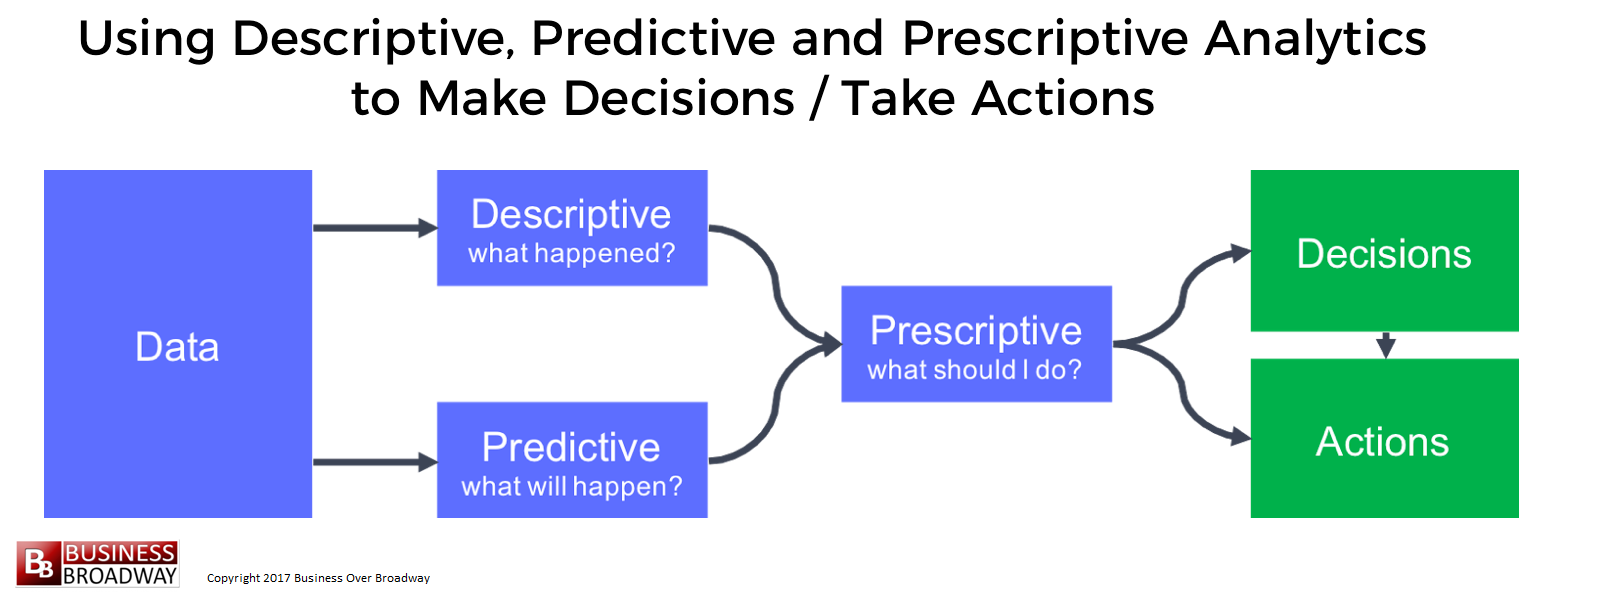 Using Predictive Analytics and Artificial Intelligence to Improve